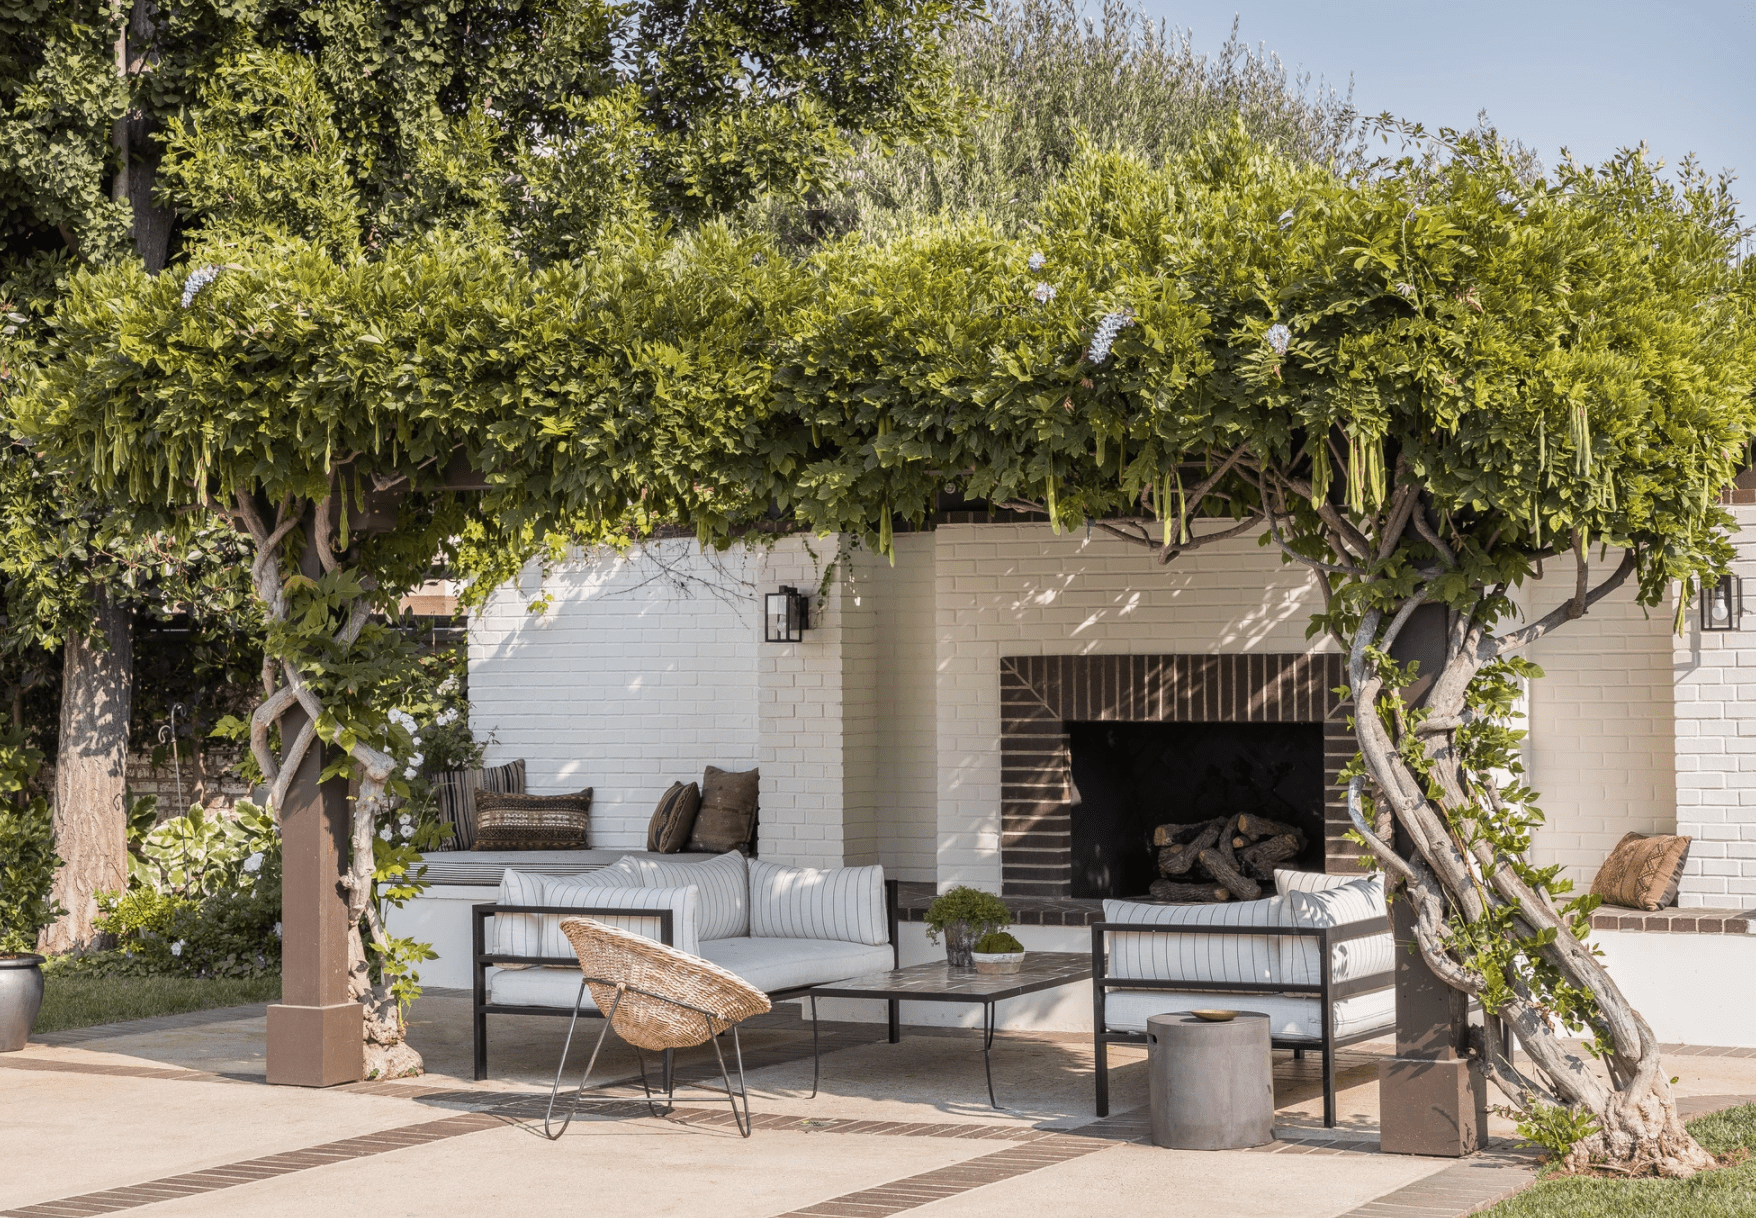 A brick-lined outdoor fireplace with sconces mounted on either side of the fire